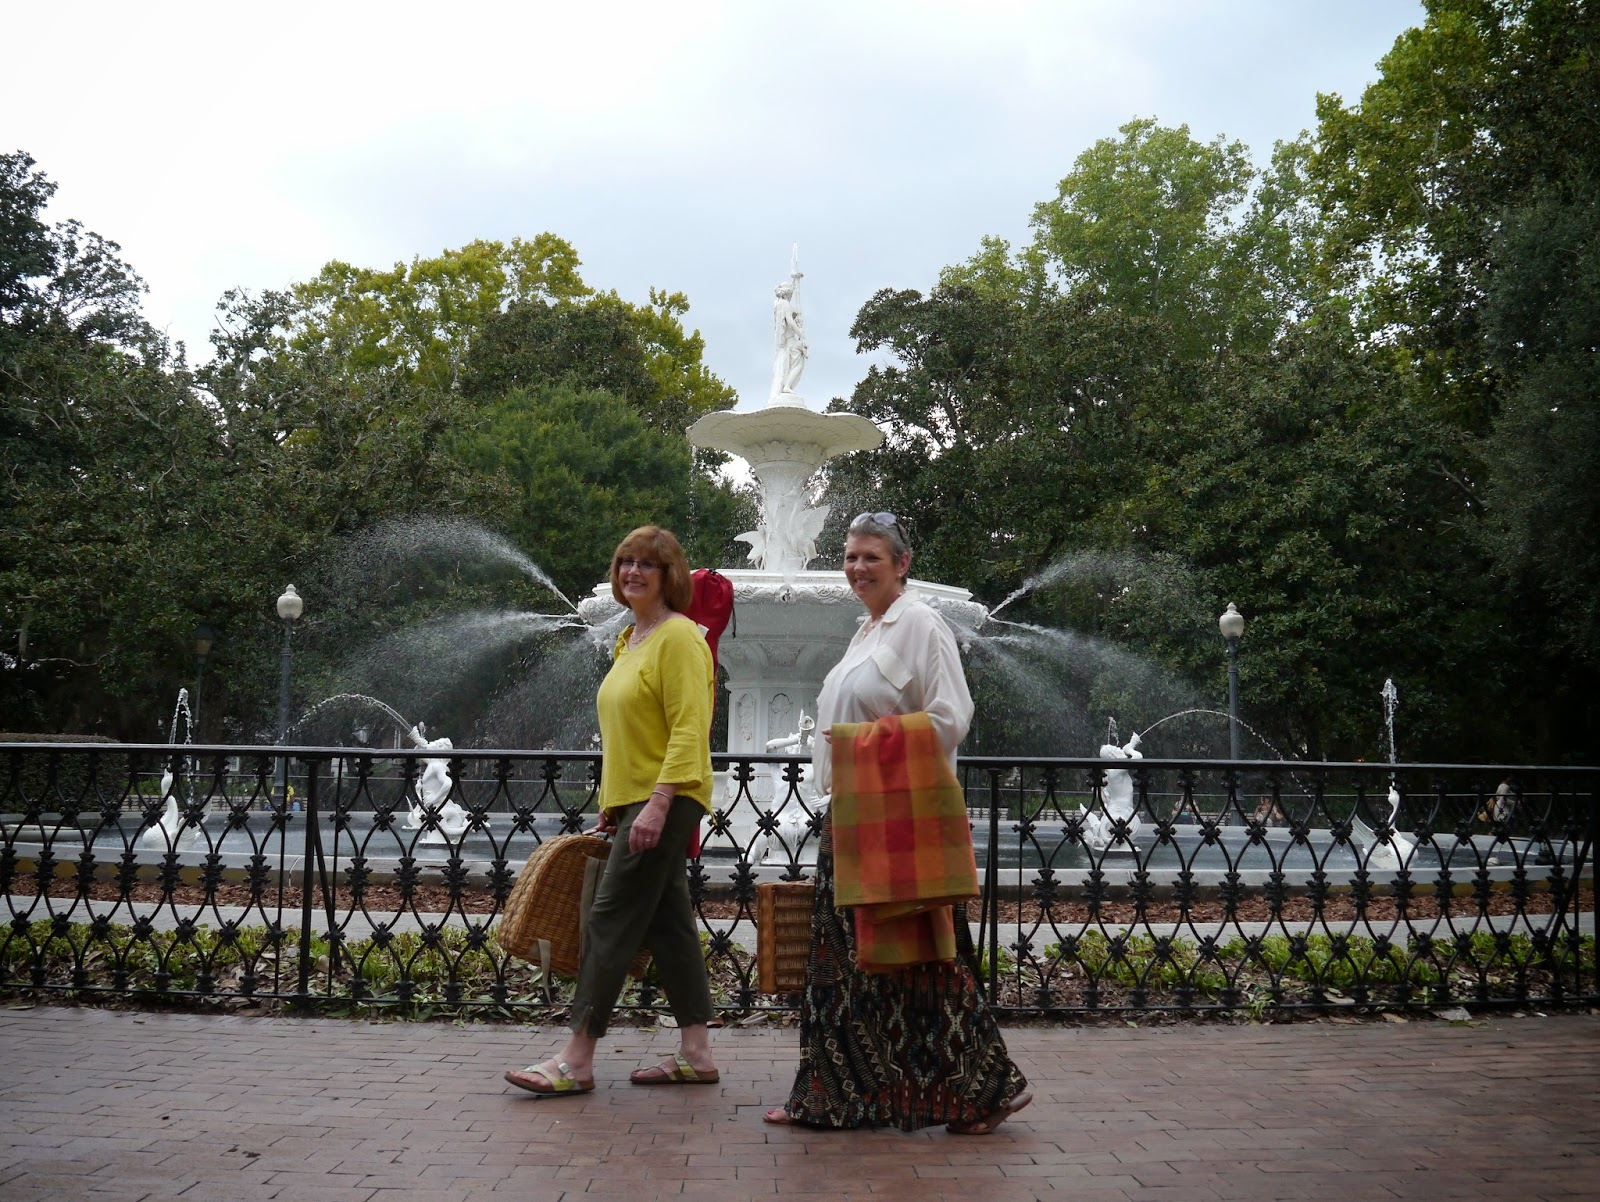 Savannah tourism stars with Savannah Picnic in Forsyth Park